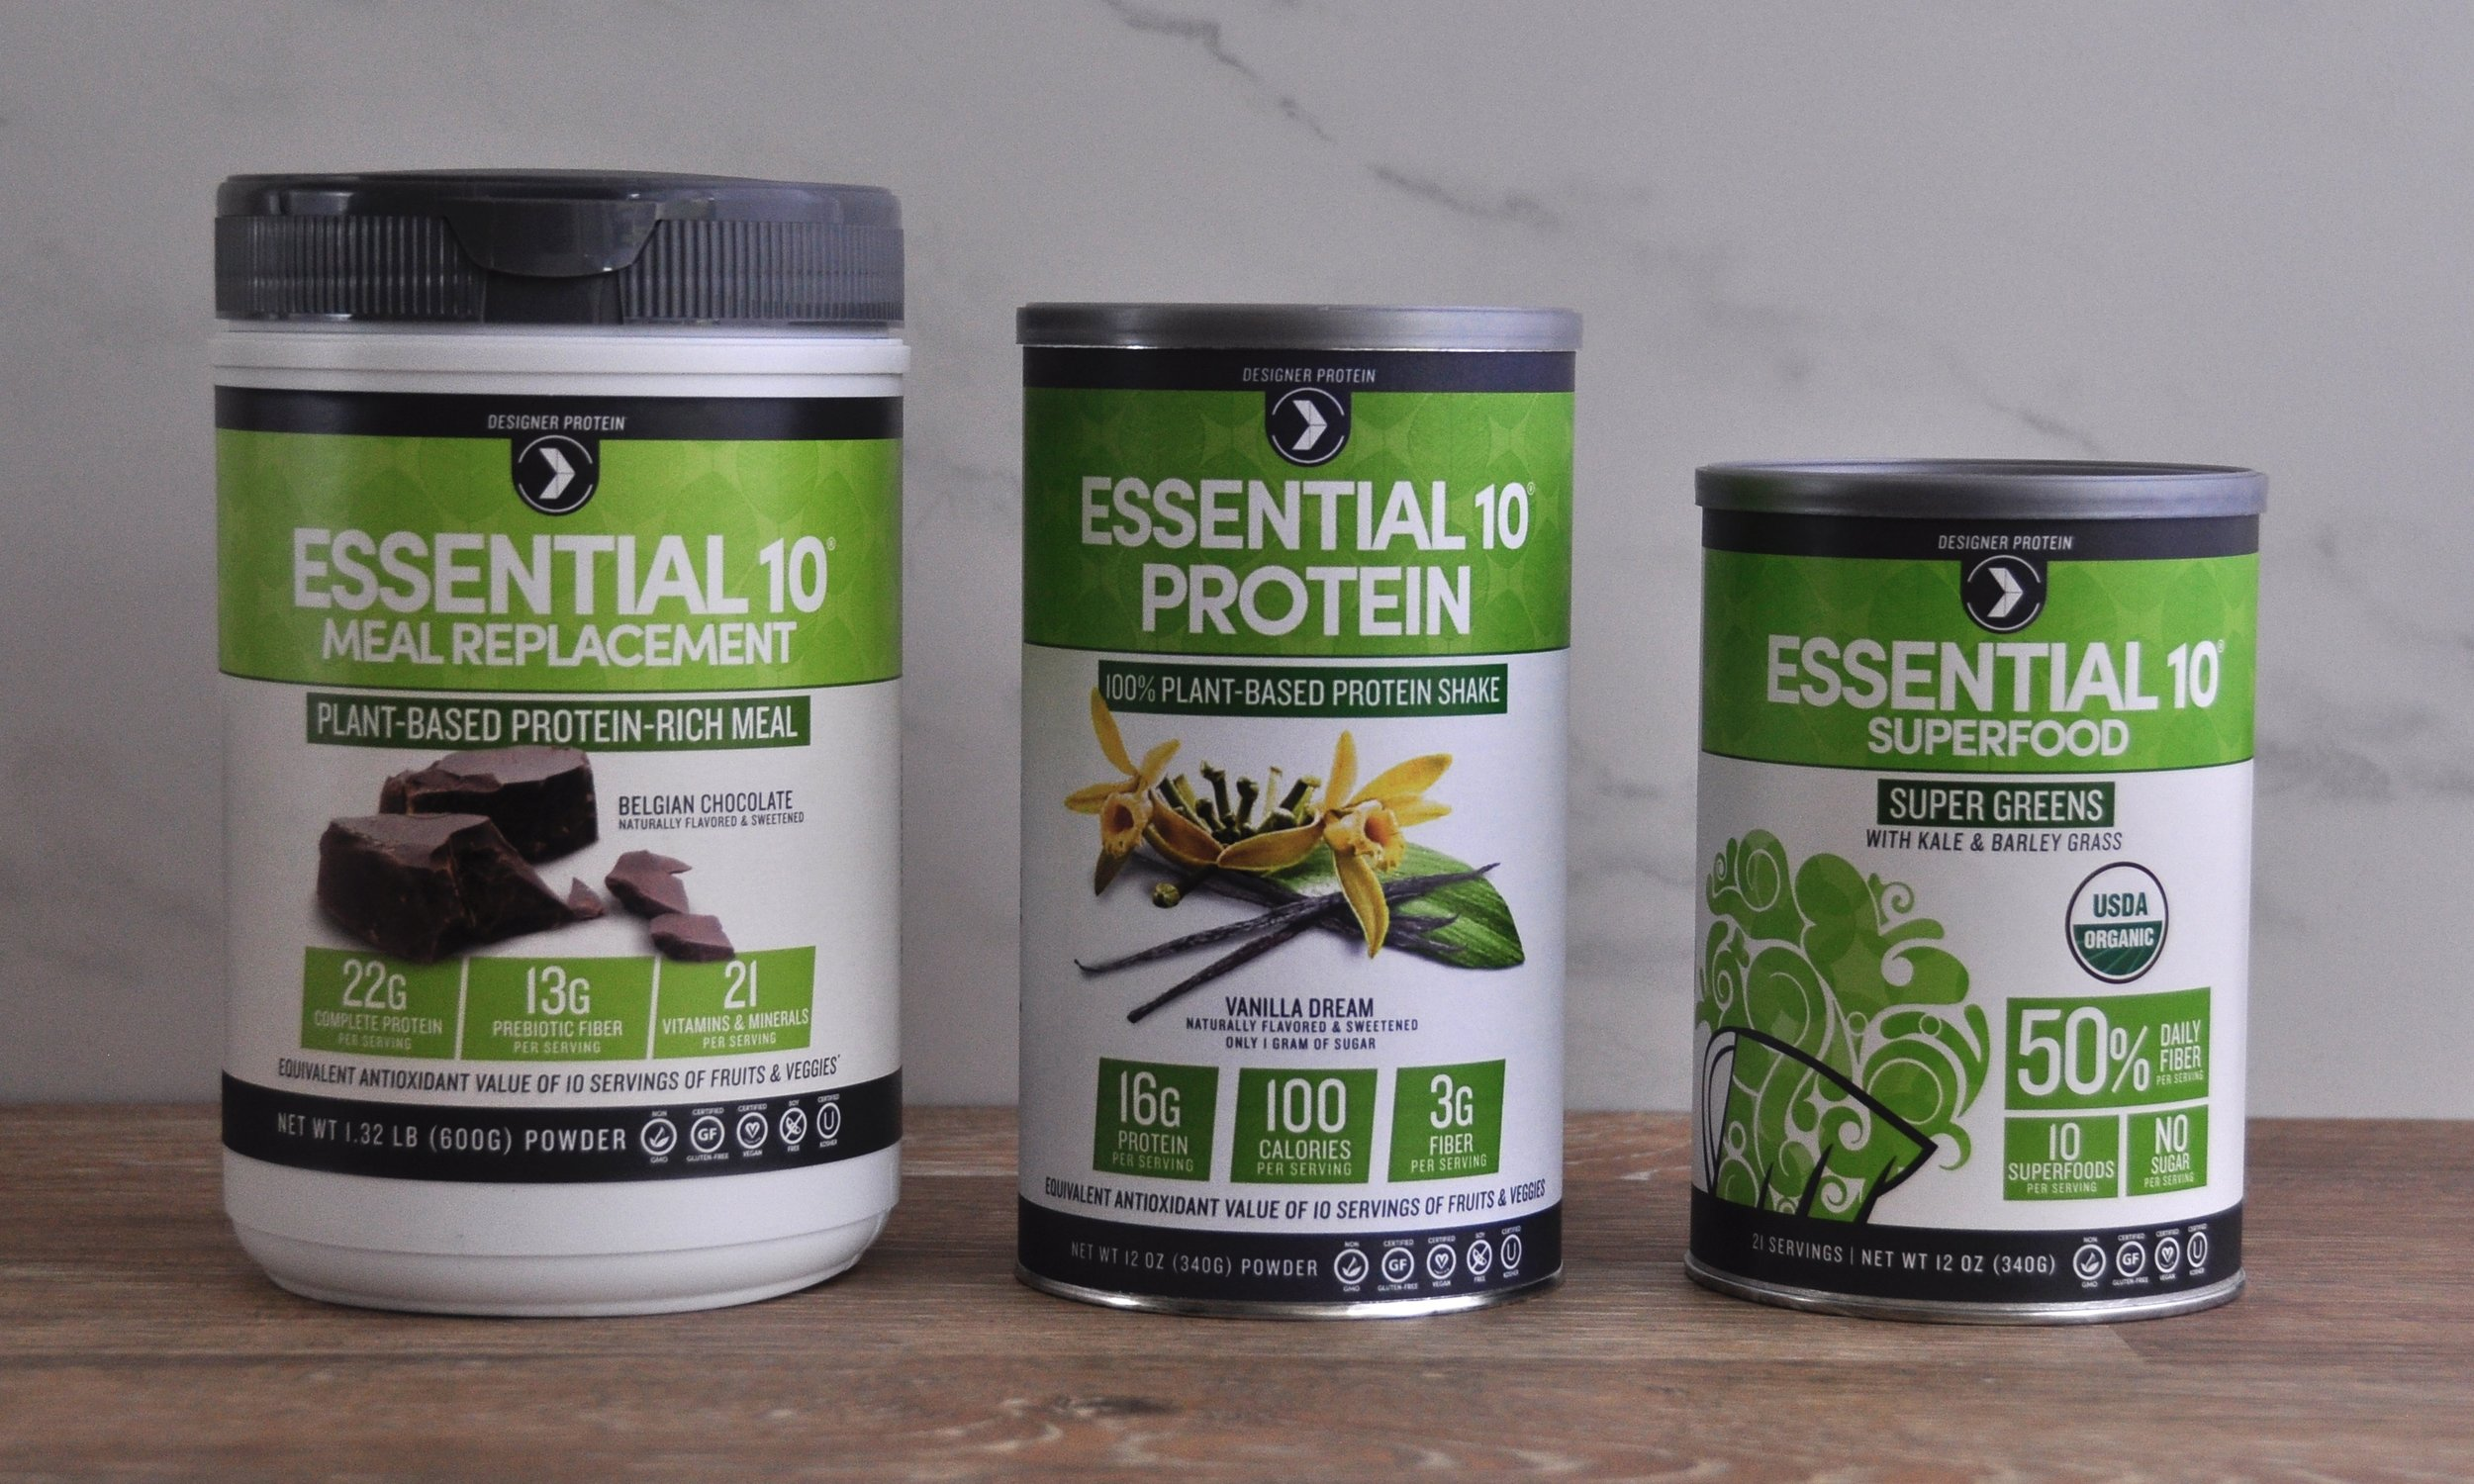 Essential 10 family - collaborated on front panel design, in charge of designing back and nutritional panel layouts.